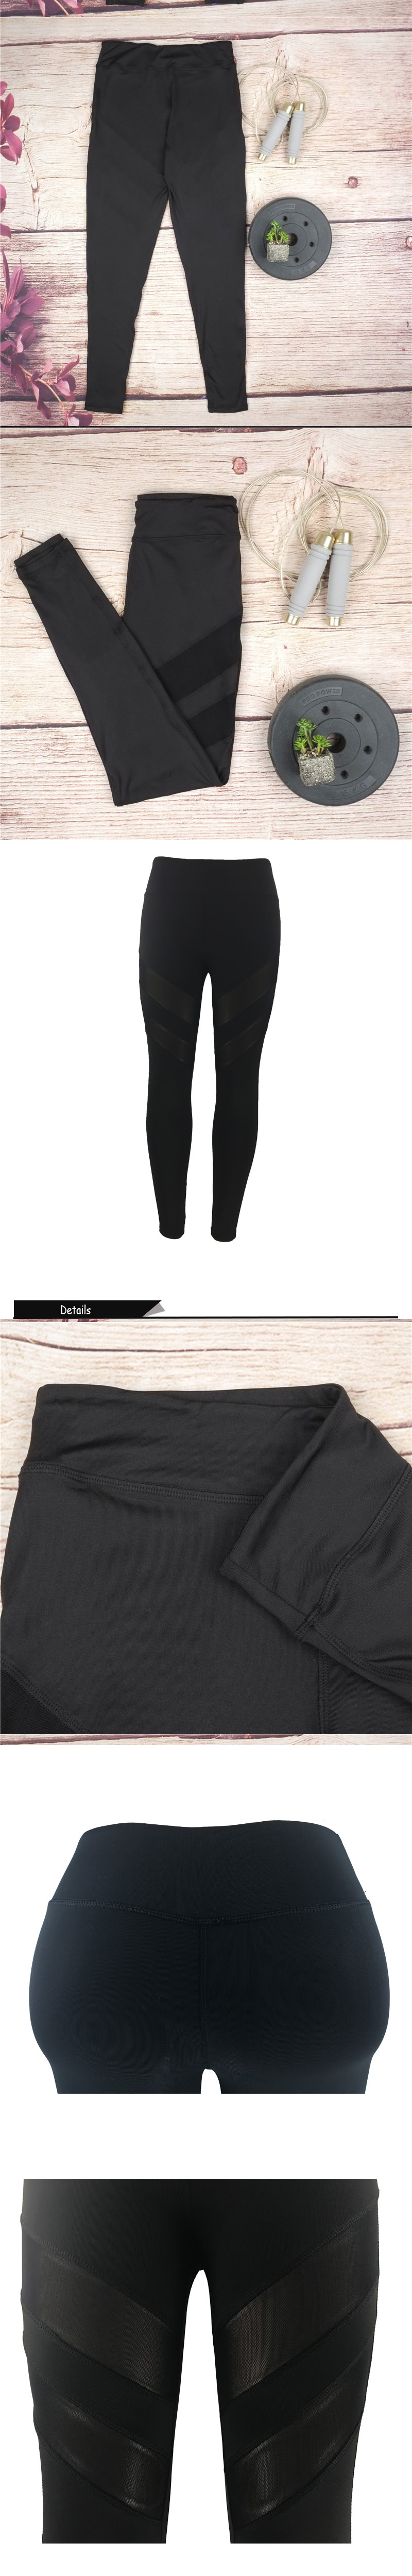 Ladies Mesh High Waist Workout Leggings Fitness Women Pants Breathable Push Up Leggings Women Quick Dry High Quality Leggins 9